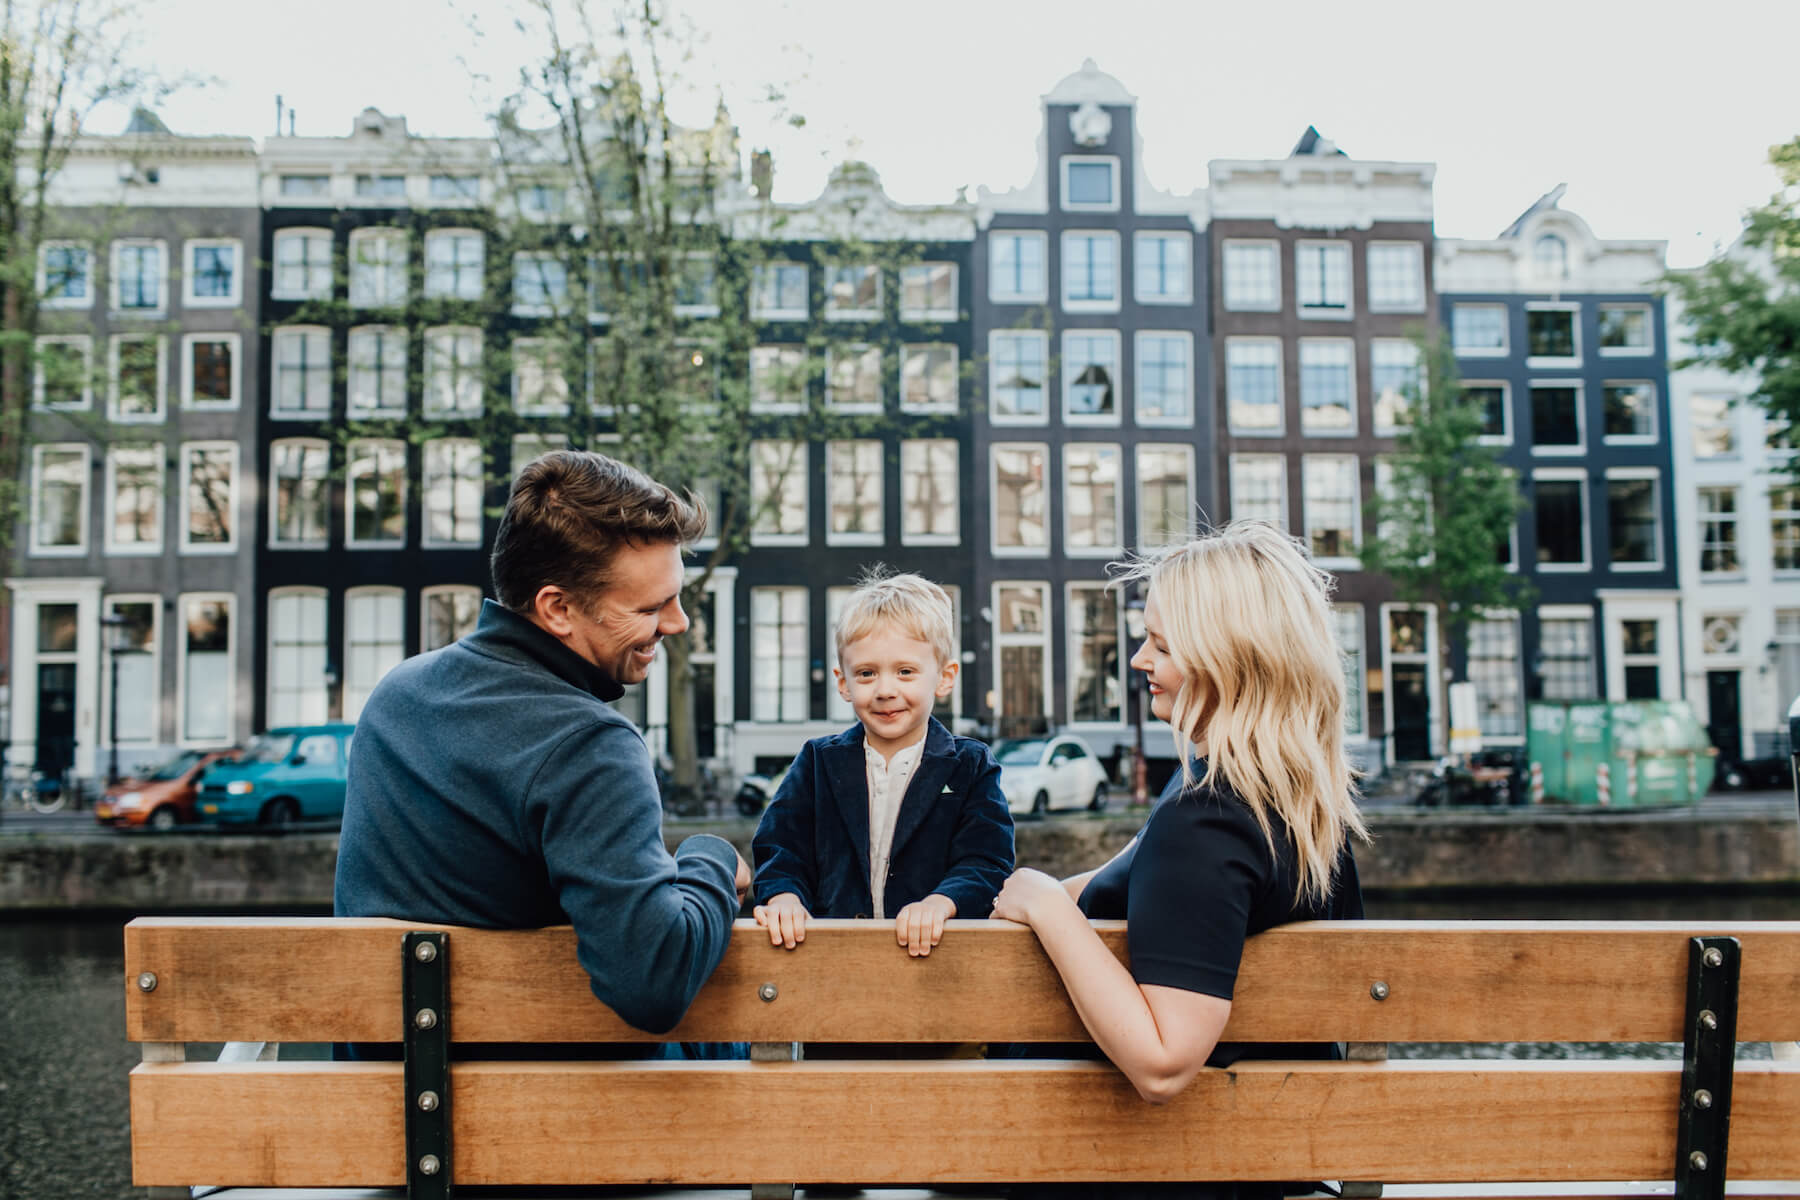 family sitting on a bench near the canal in Amsterdam, Netherlands